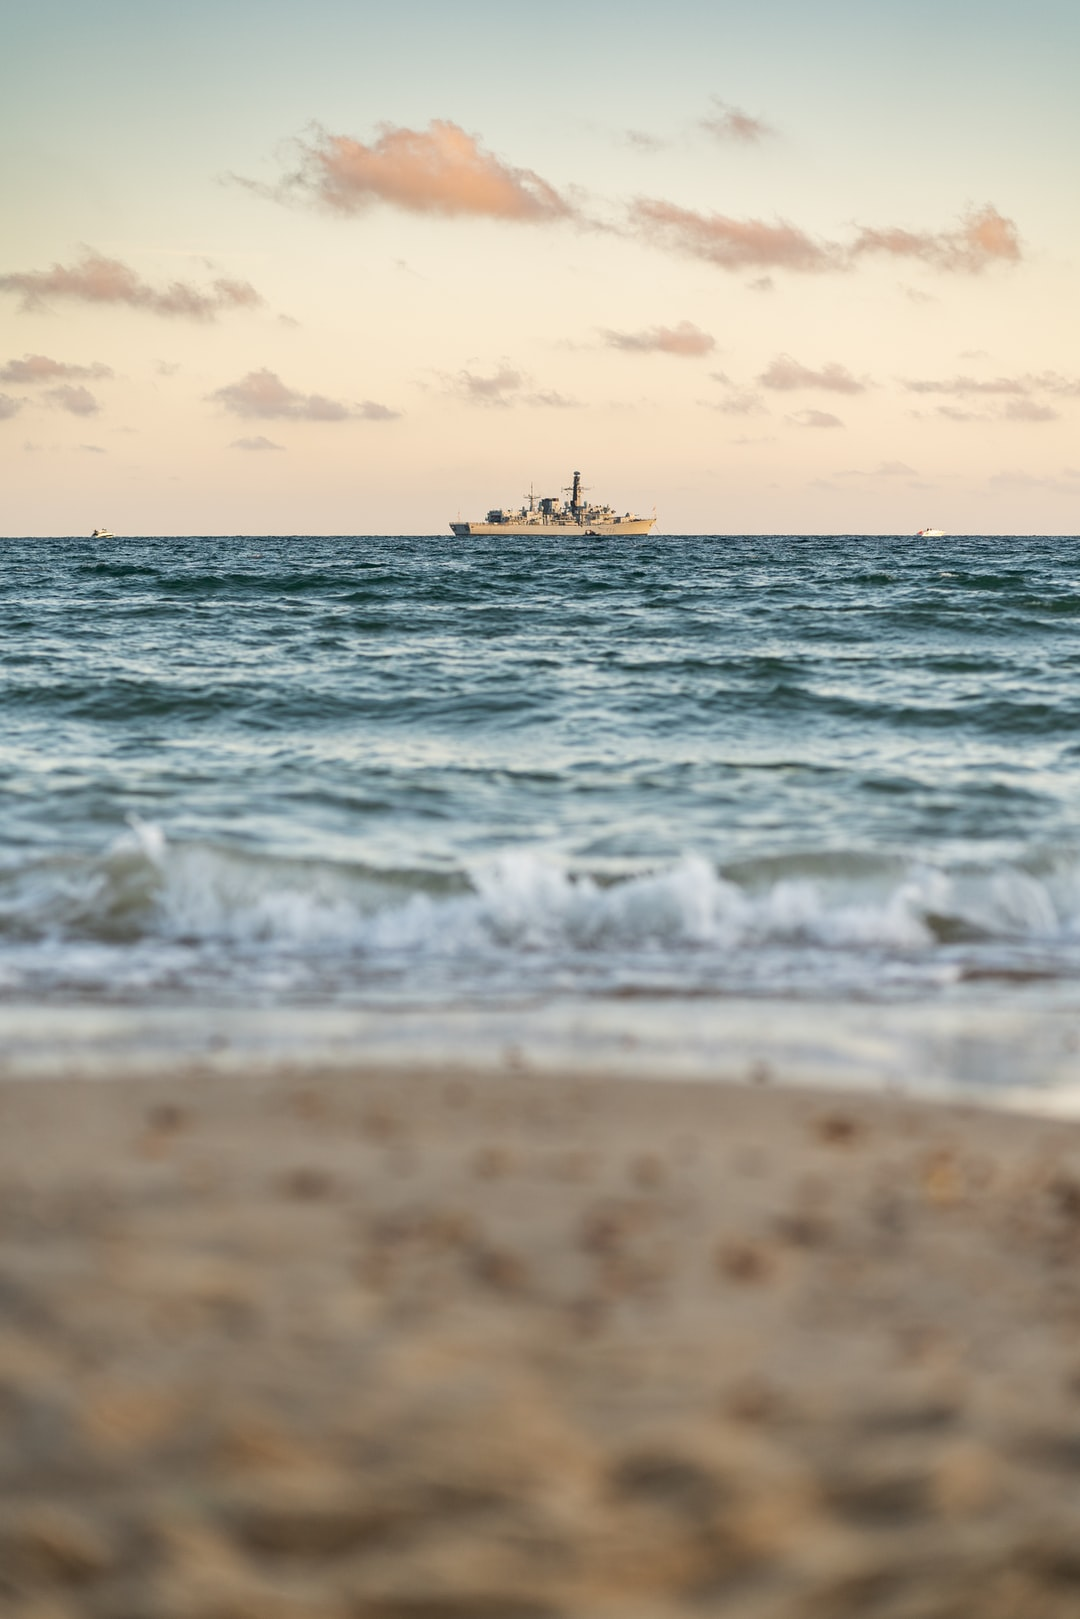 A Frigate on the South Coast of the UK near Bournemouth during Golden Hour.